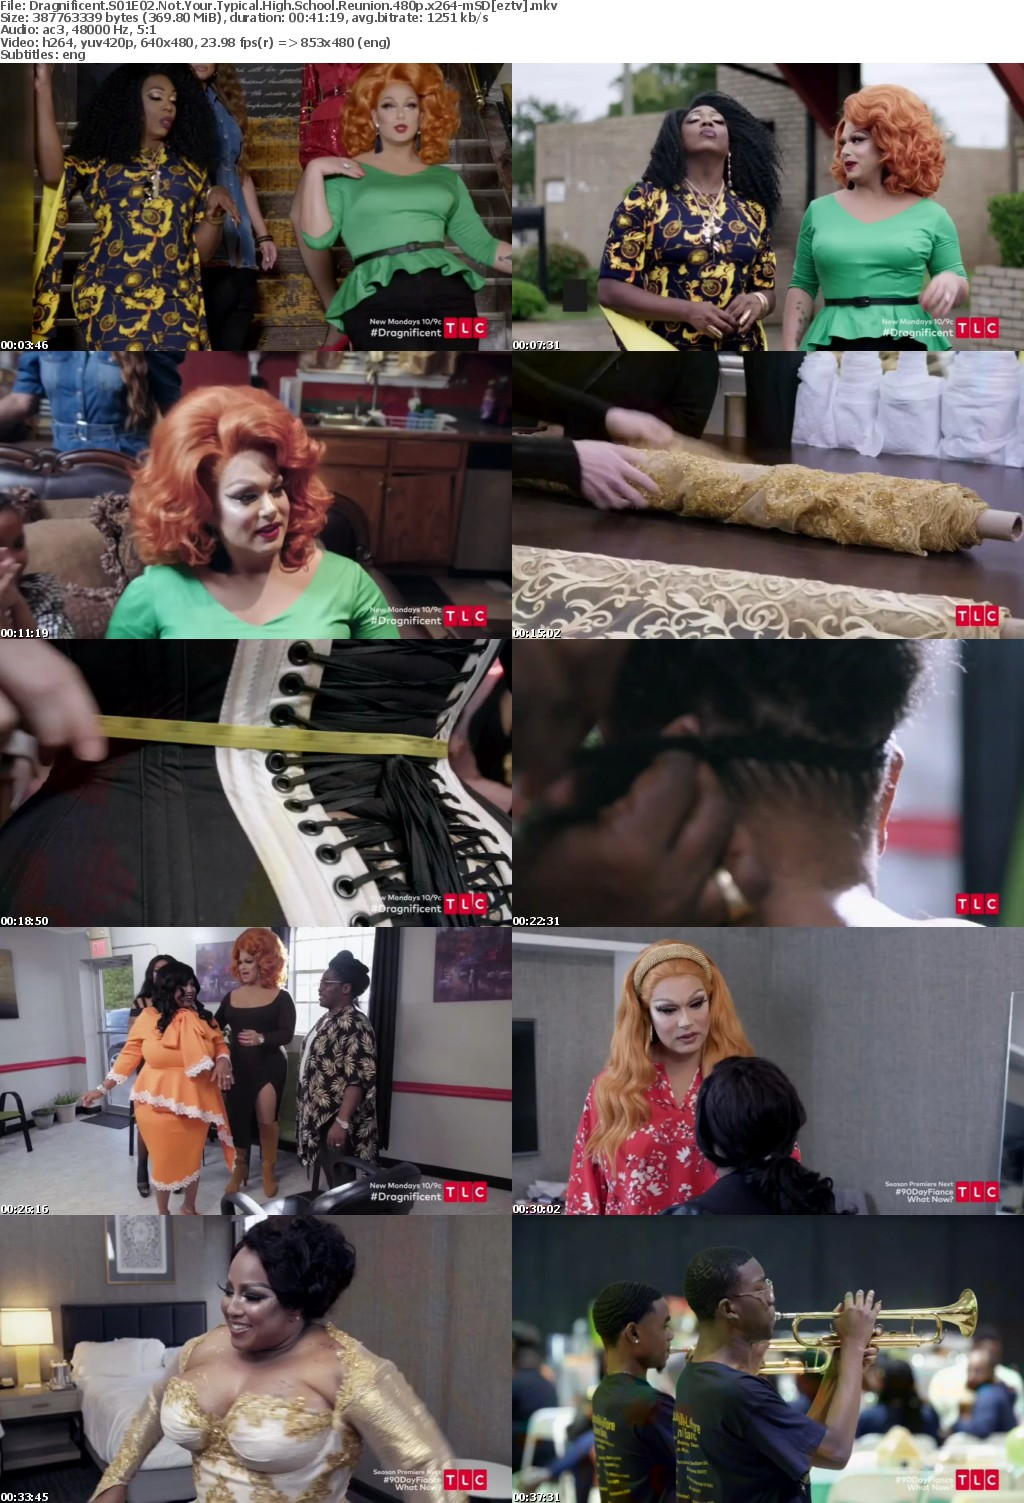 Dragnificent S01E02 Not Your Typical High School Reunion 480p x264-mSD